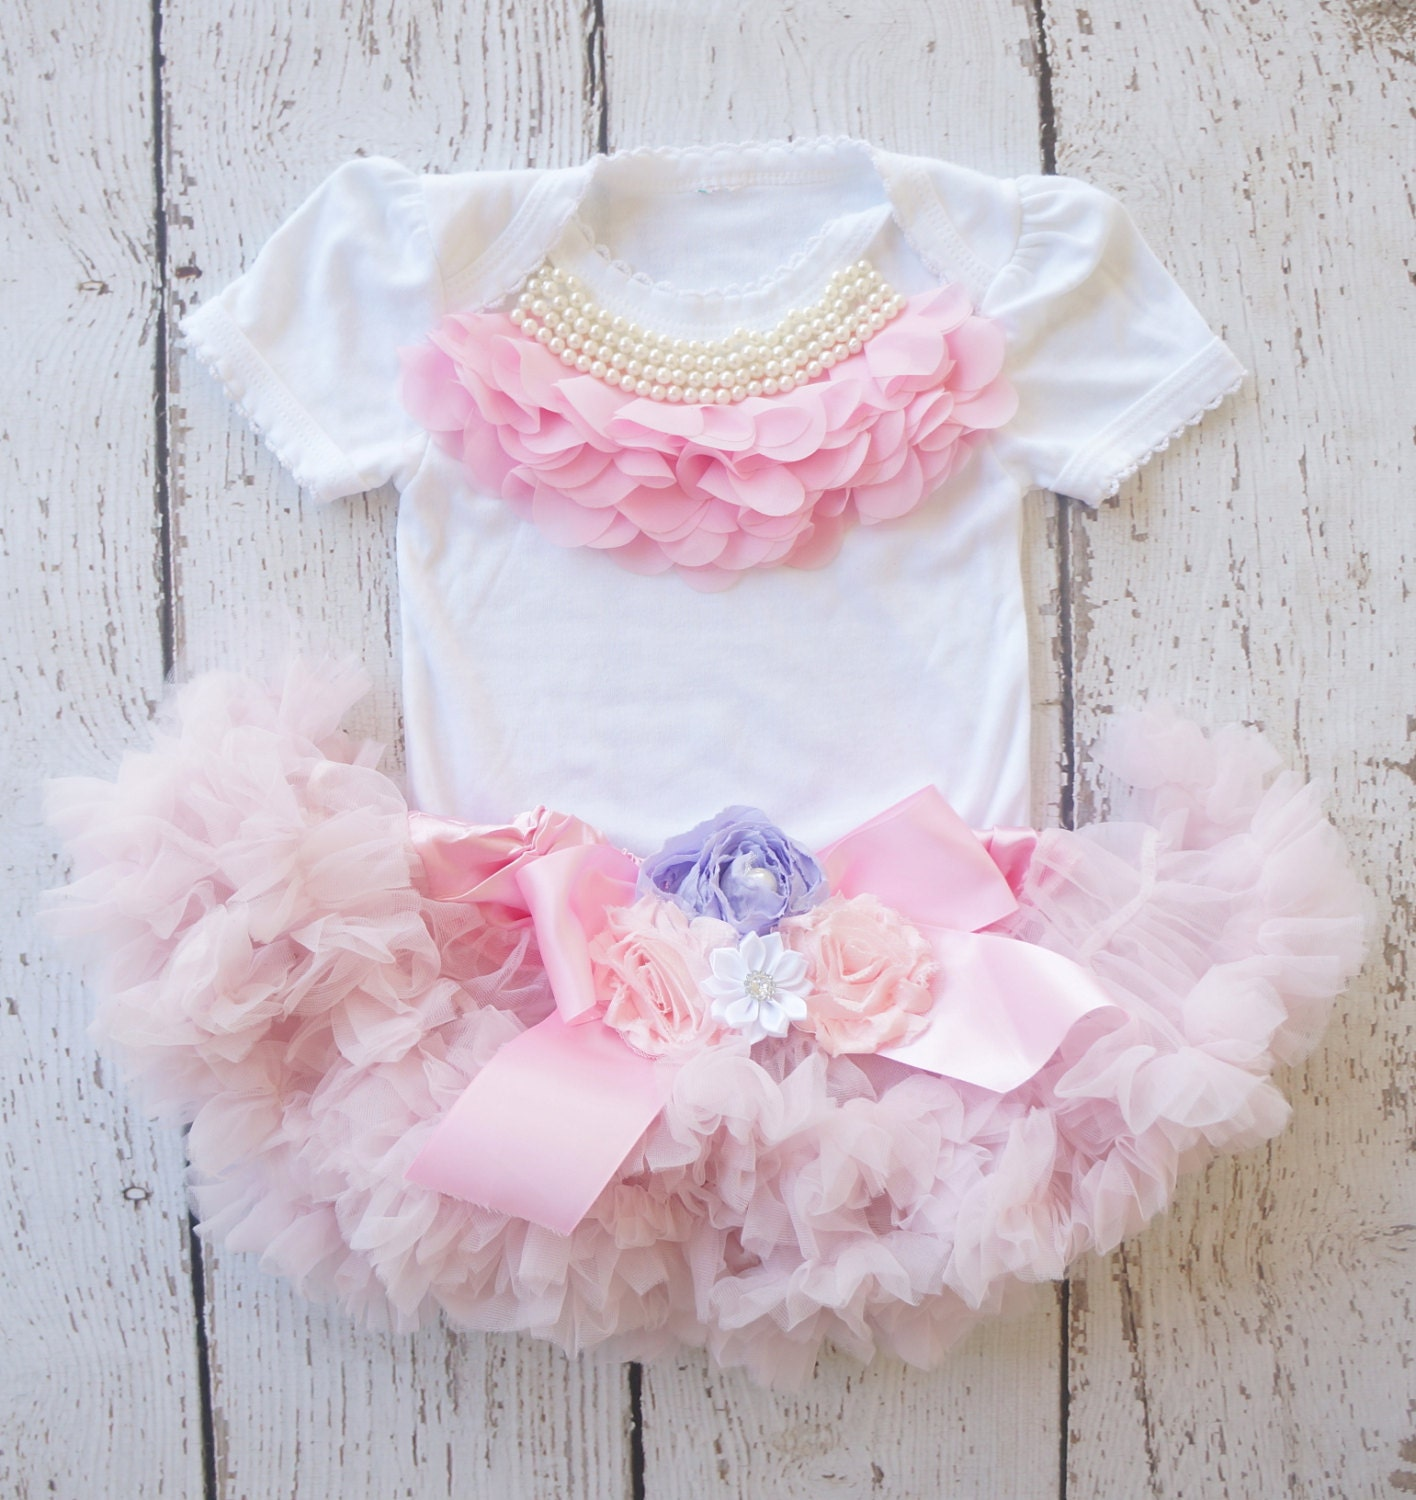 Shabby chic birthday outfit girls 1st birthday by poshpeanutkids - Shabby chic outfit ideas ...